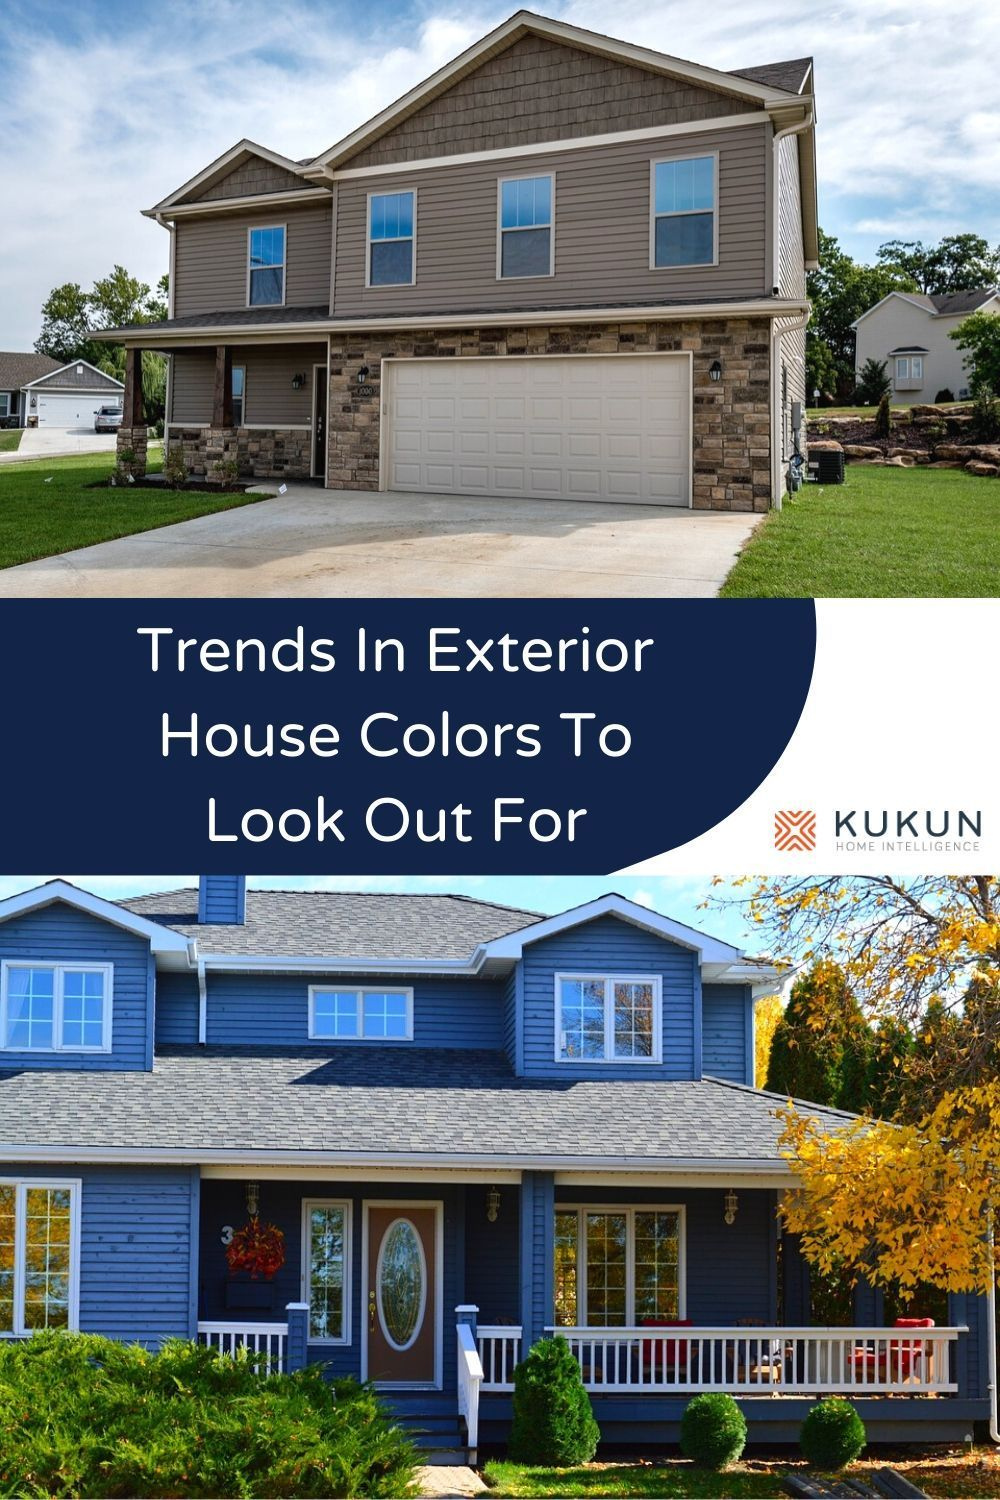 12 Exterior House Colors That Will Be Huge In 2020 In 2020